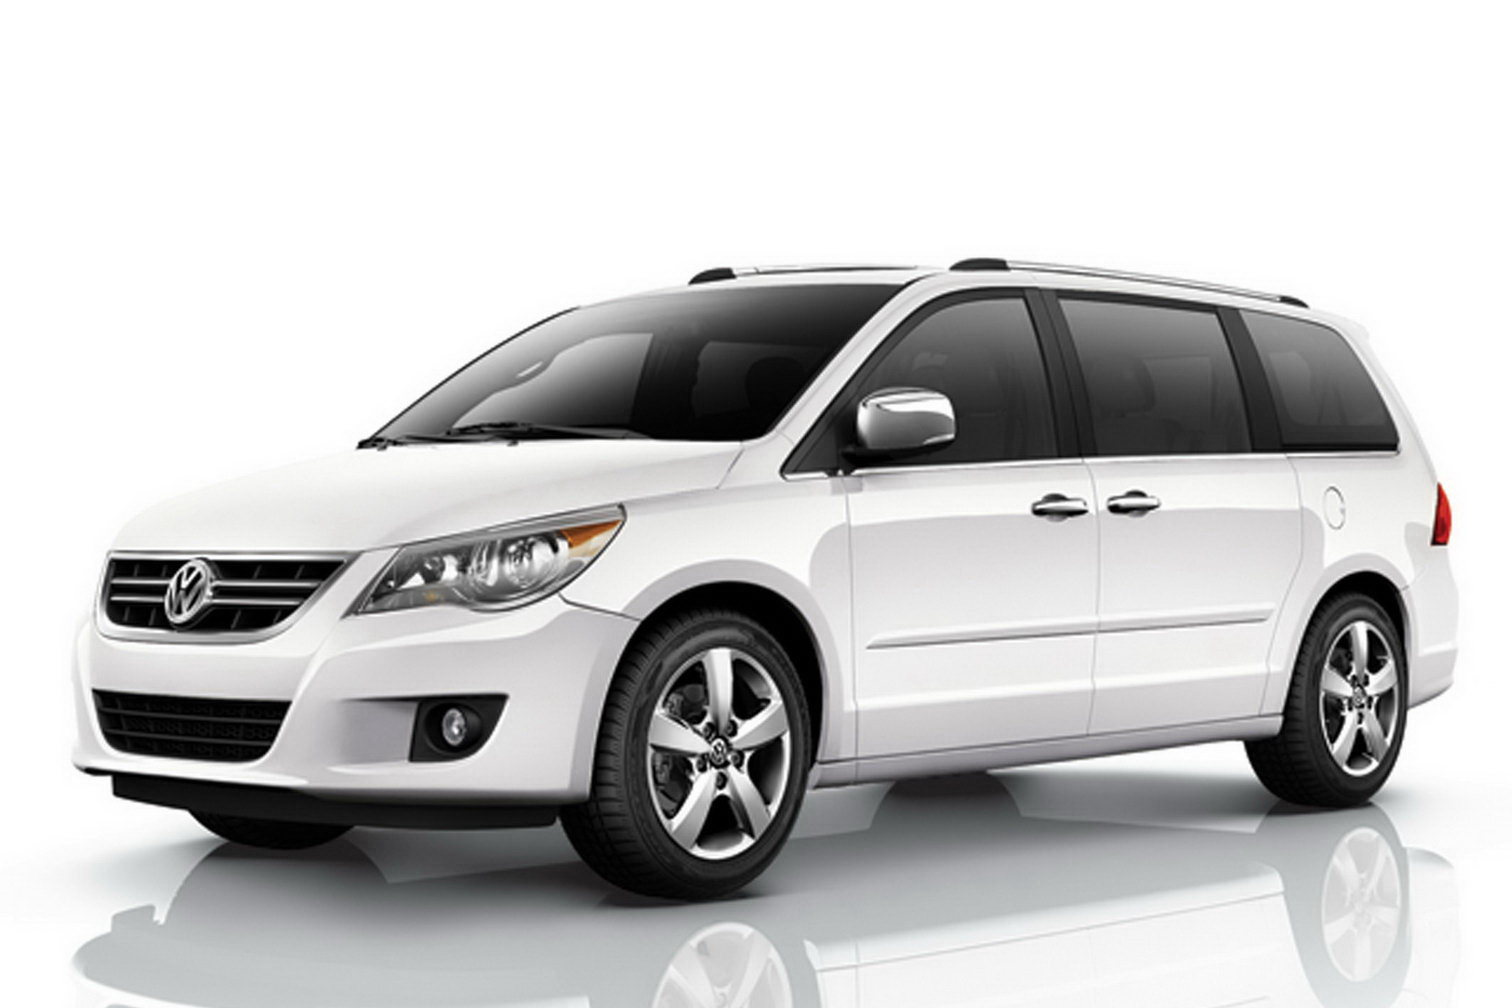 2010 Volkswagen Routan Information And Photos Zombiedrive Engine Diagram 2